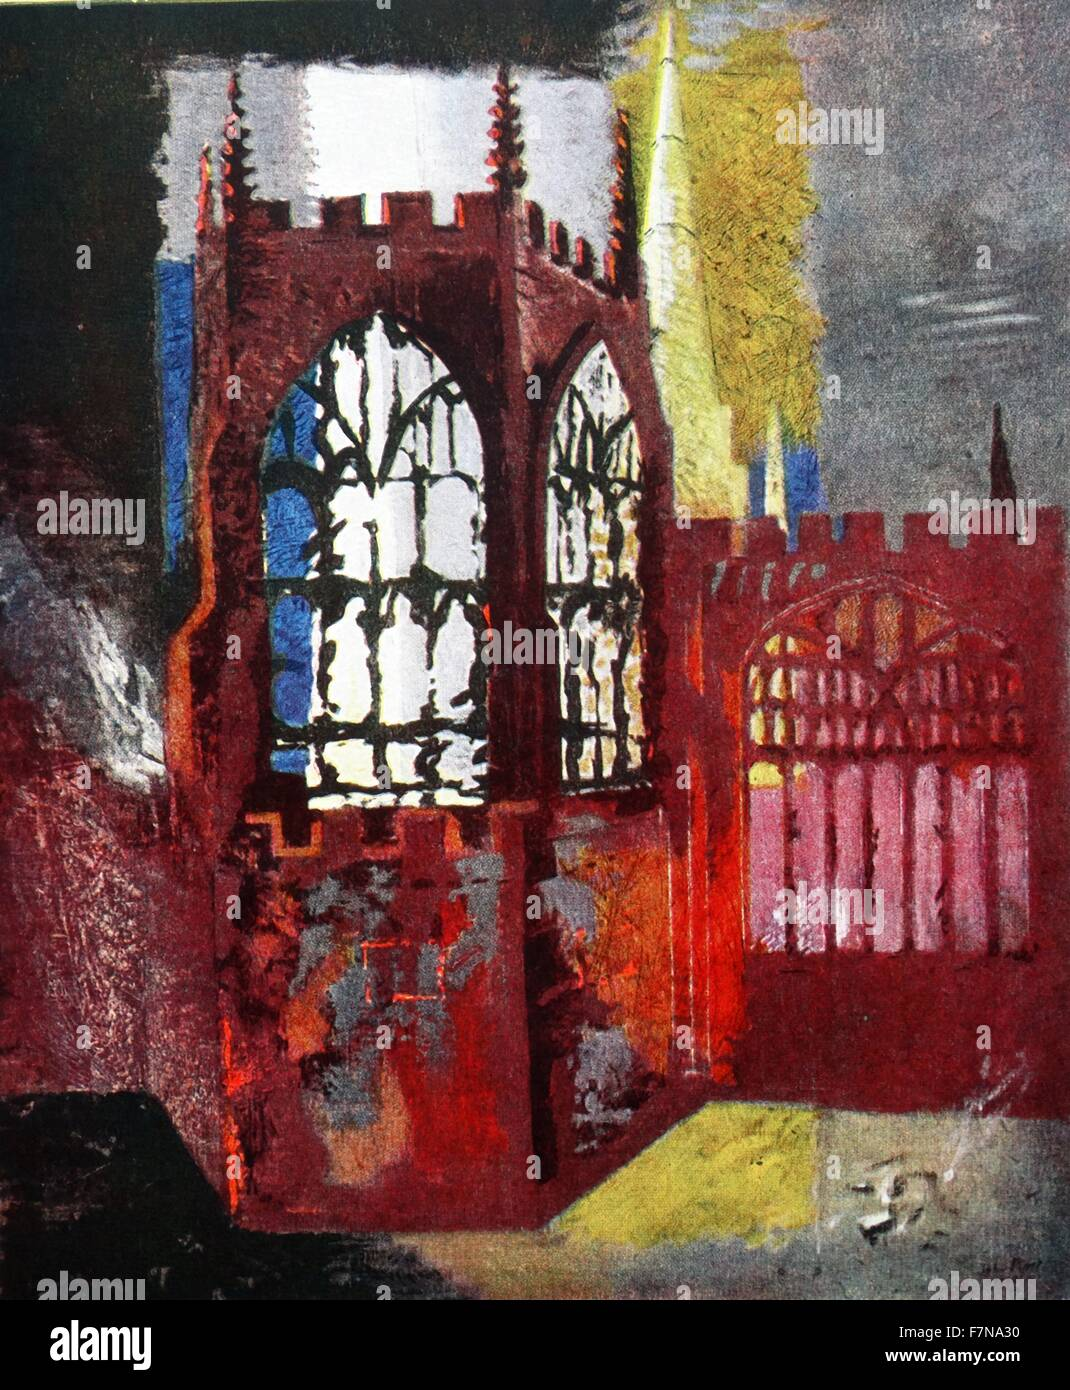 Painting of the Coventry Cathedral by John Piper (1903-1992) English painter and printmaker. Dated 1941 - Stock Image